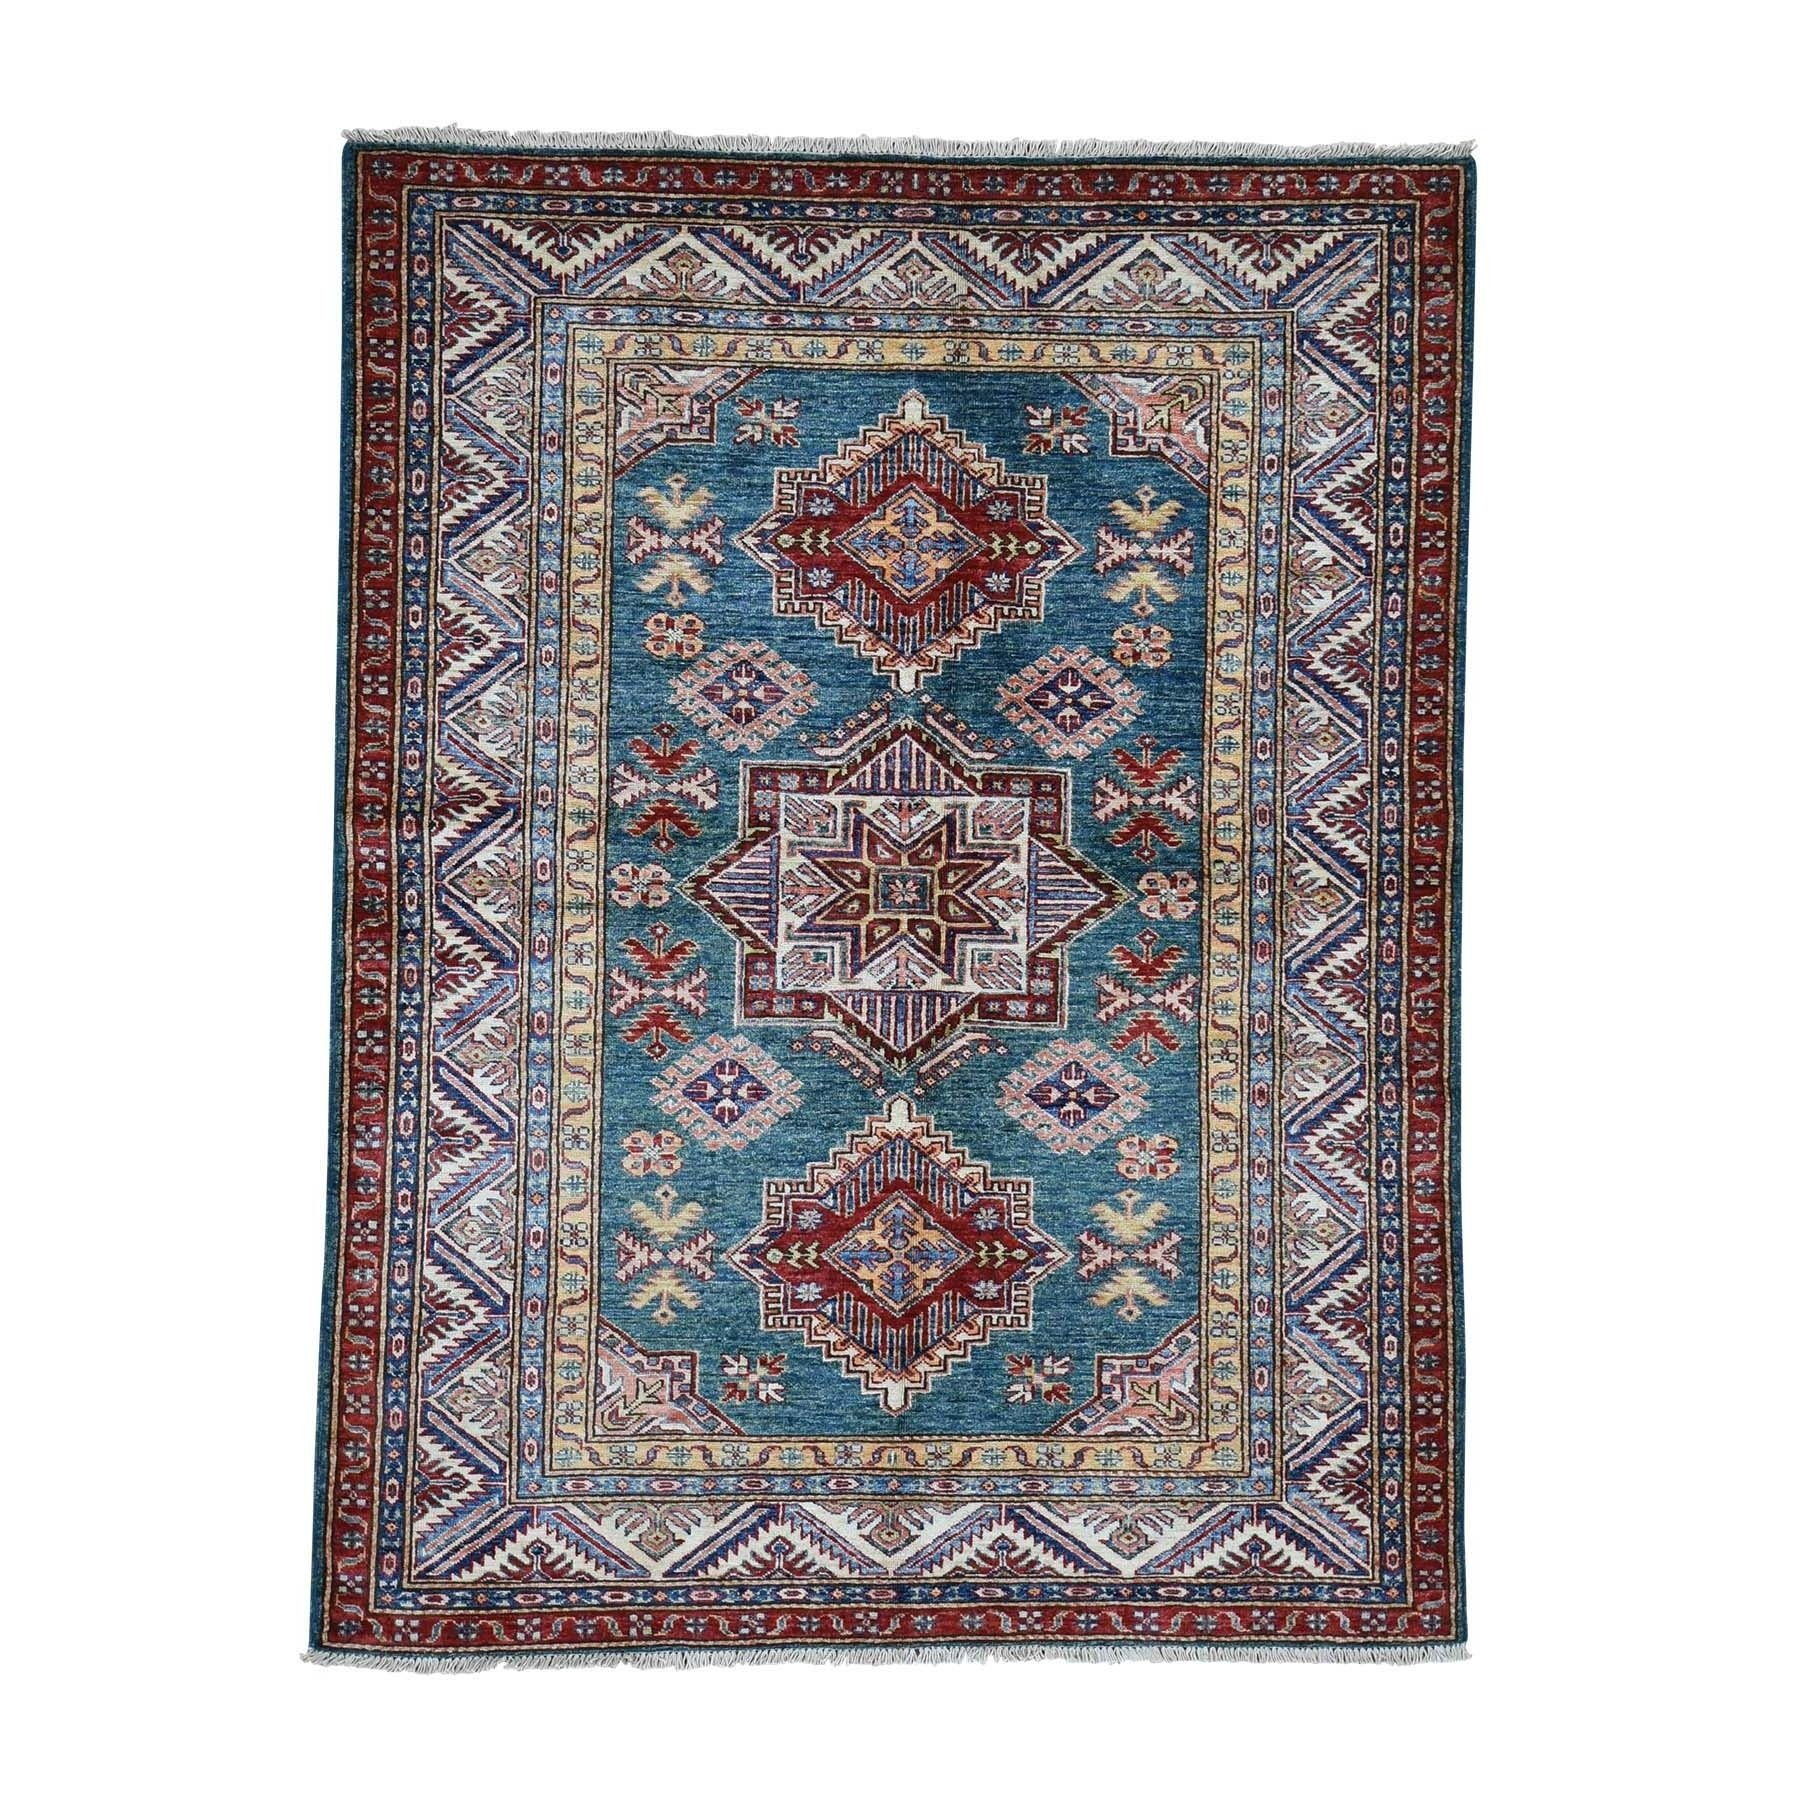 Shahbanu Rugs Super Kazak Pure Wool Geometric Design Hand Knotted Oriental Rug 5 0 X 6 6 5 0 X 6 6 Area Rugs Rugs Colorful Rugs